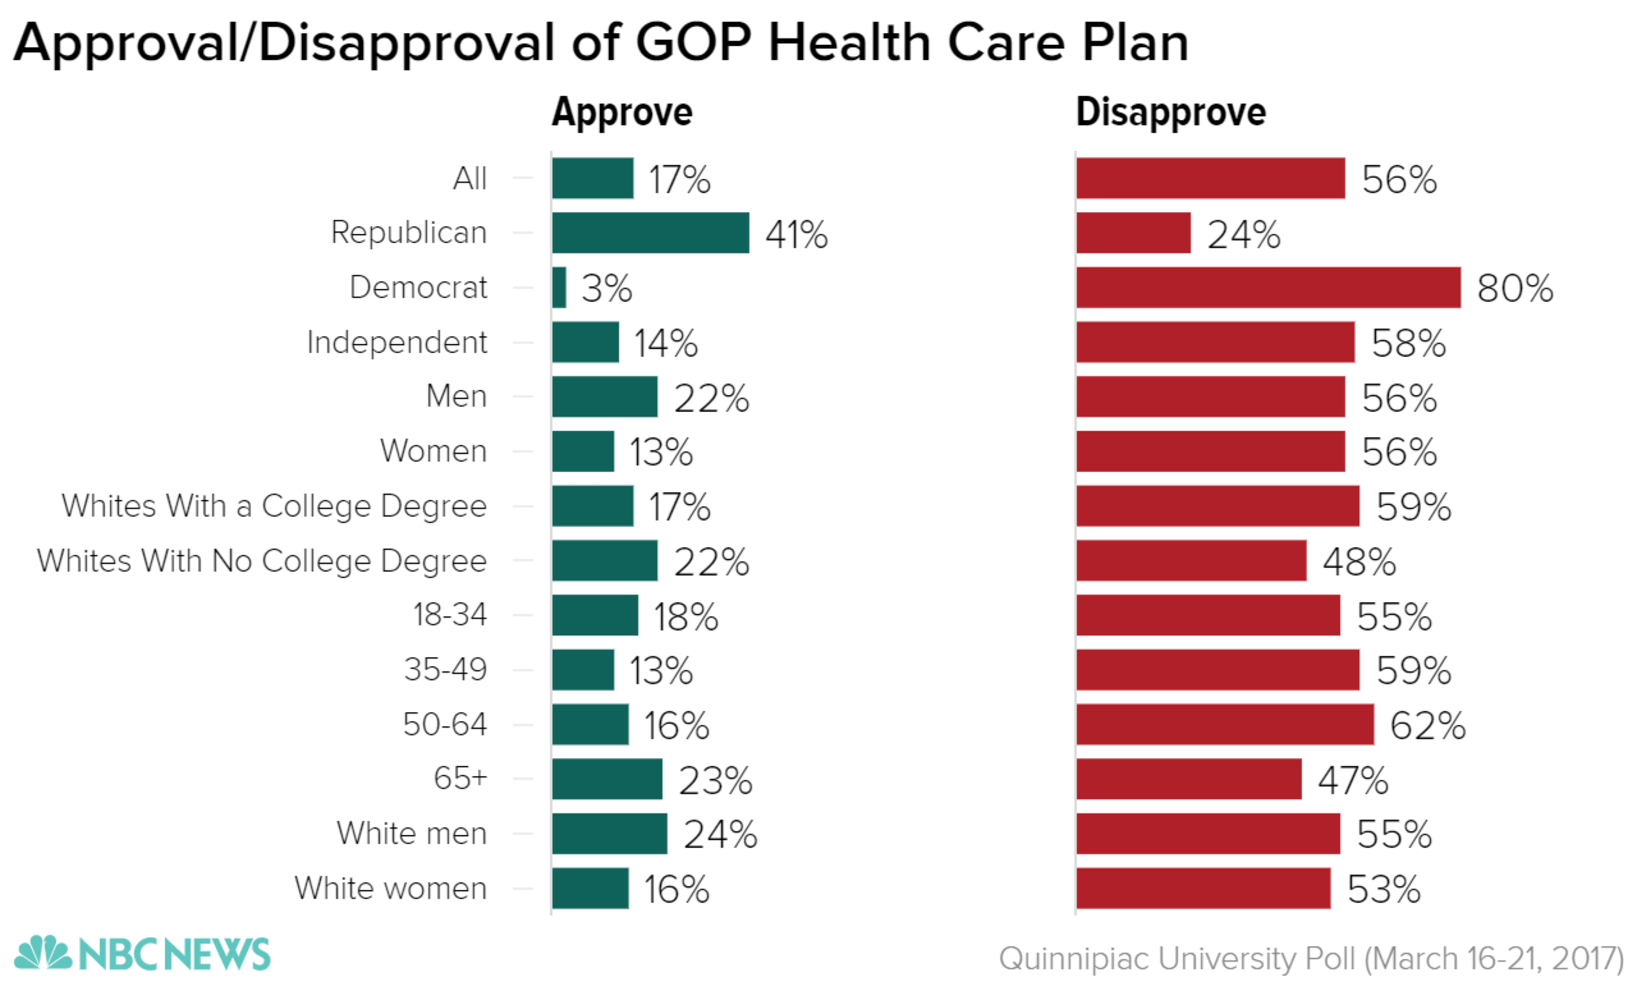 Poll: Majority Disapproves of GOP Health Care Plan - NBC News | title